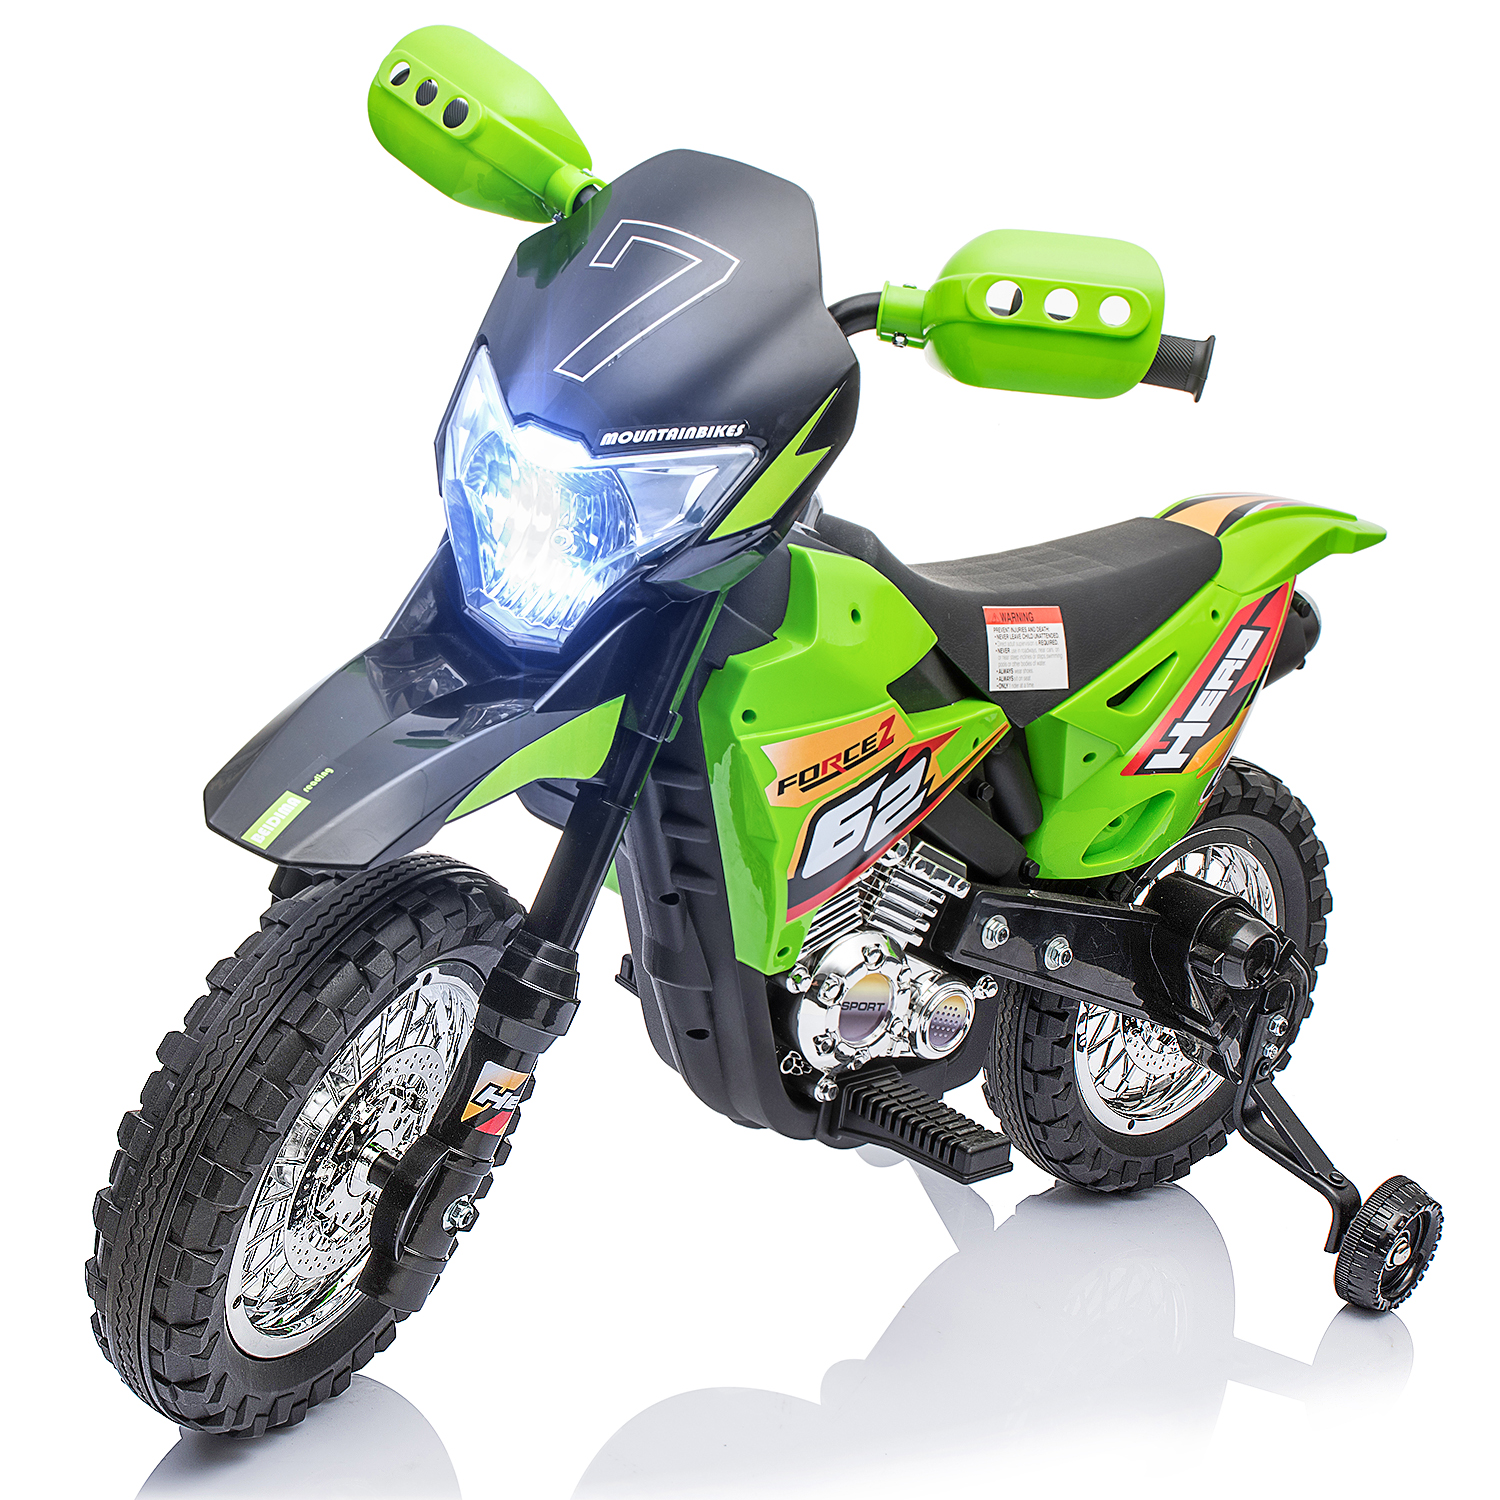 Merax 6V Kids Electric Powered Ride-On Motorcycle Dirt Bike with Training Wheels, Light, Music – Green